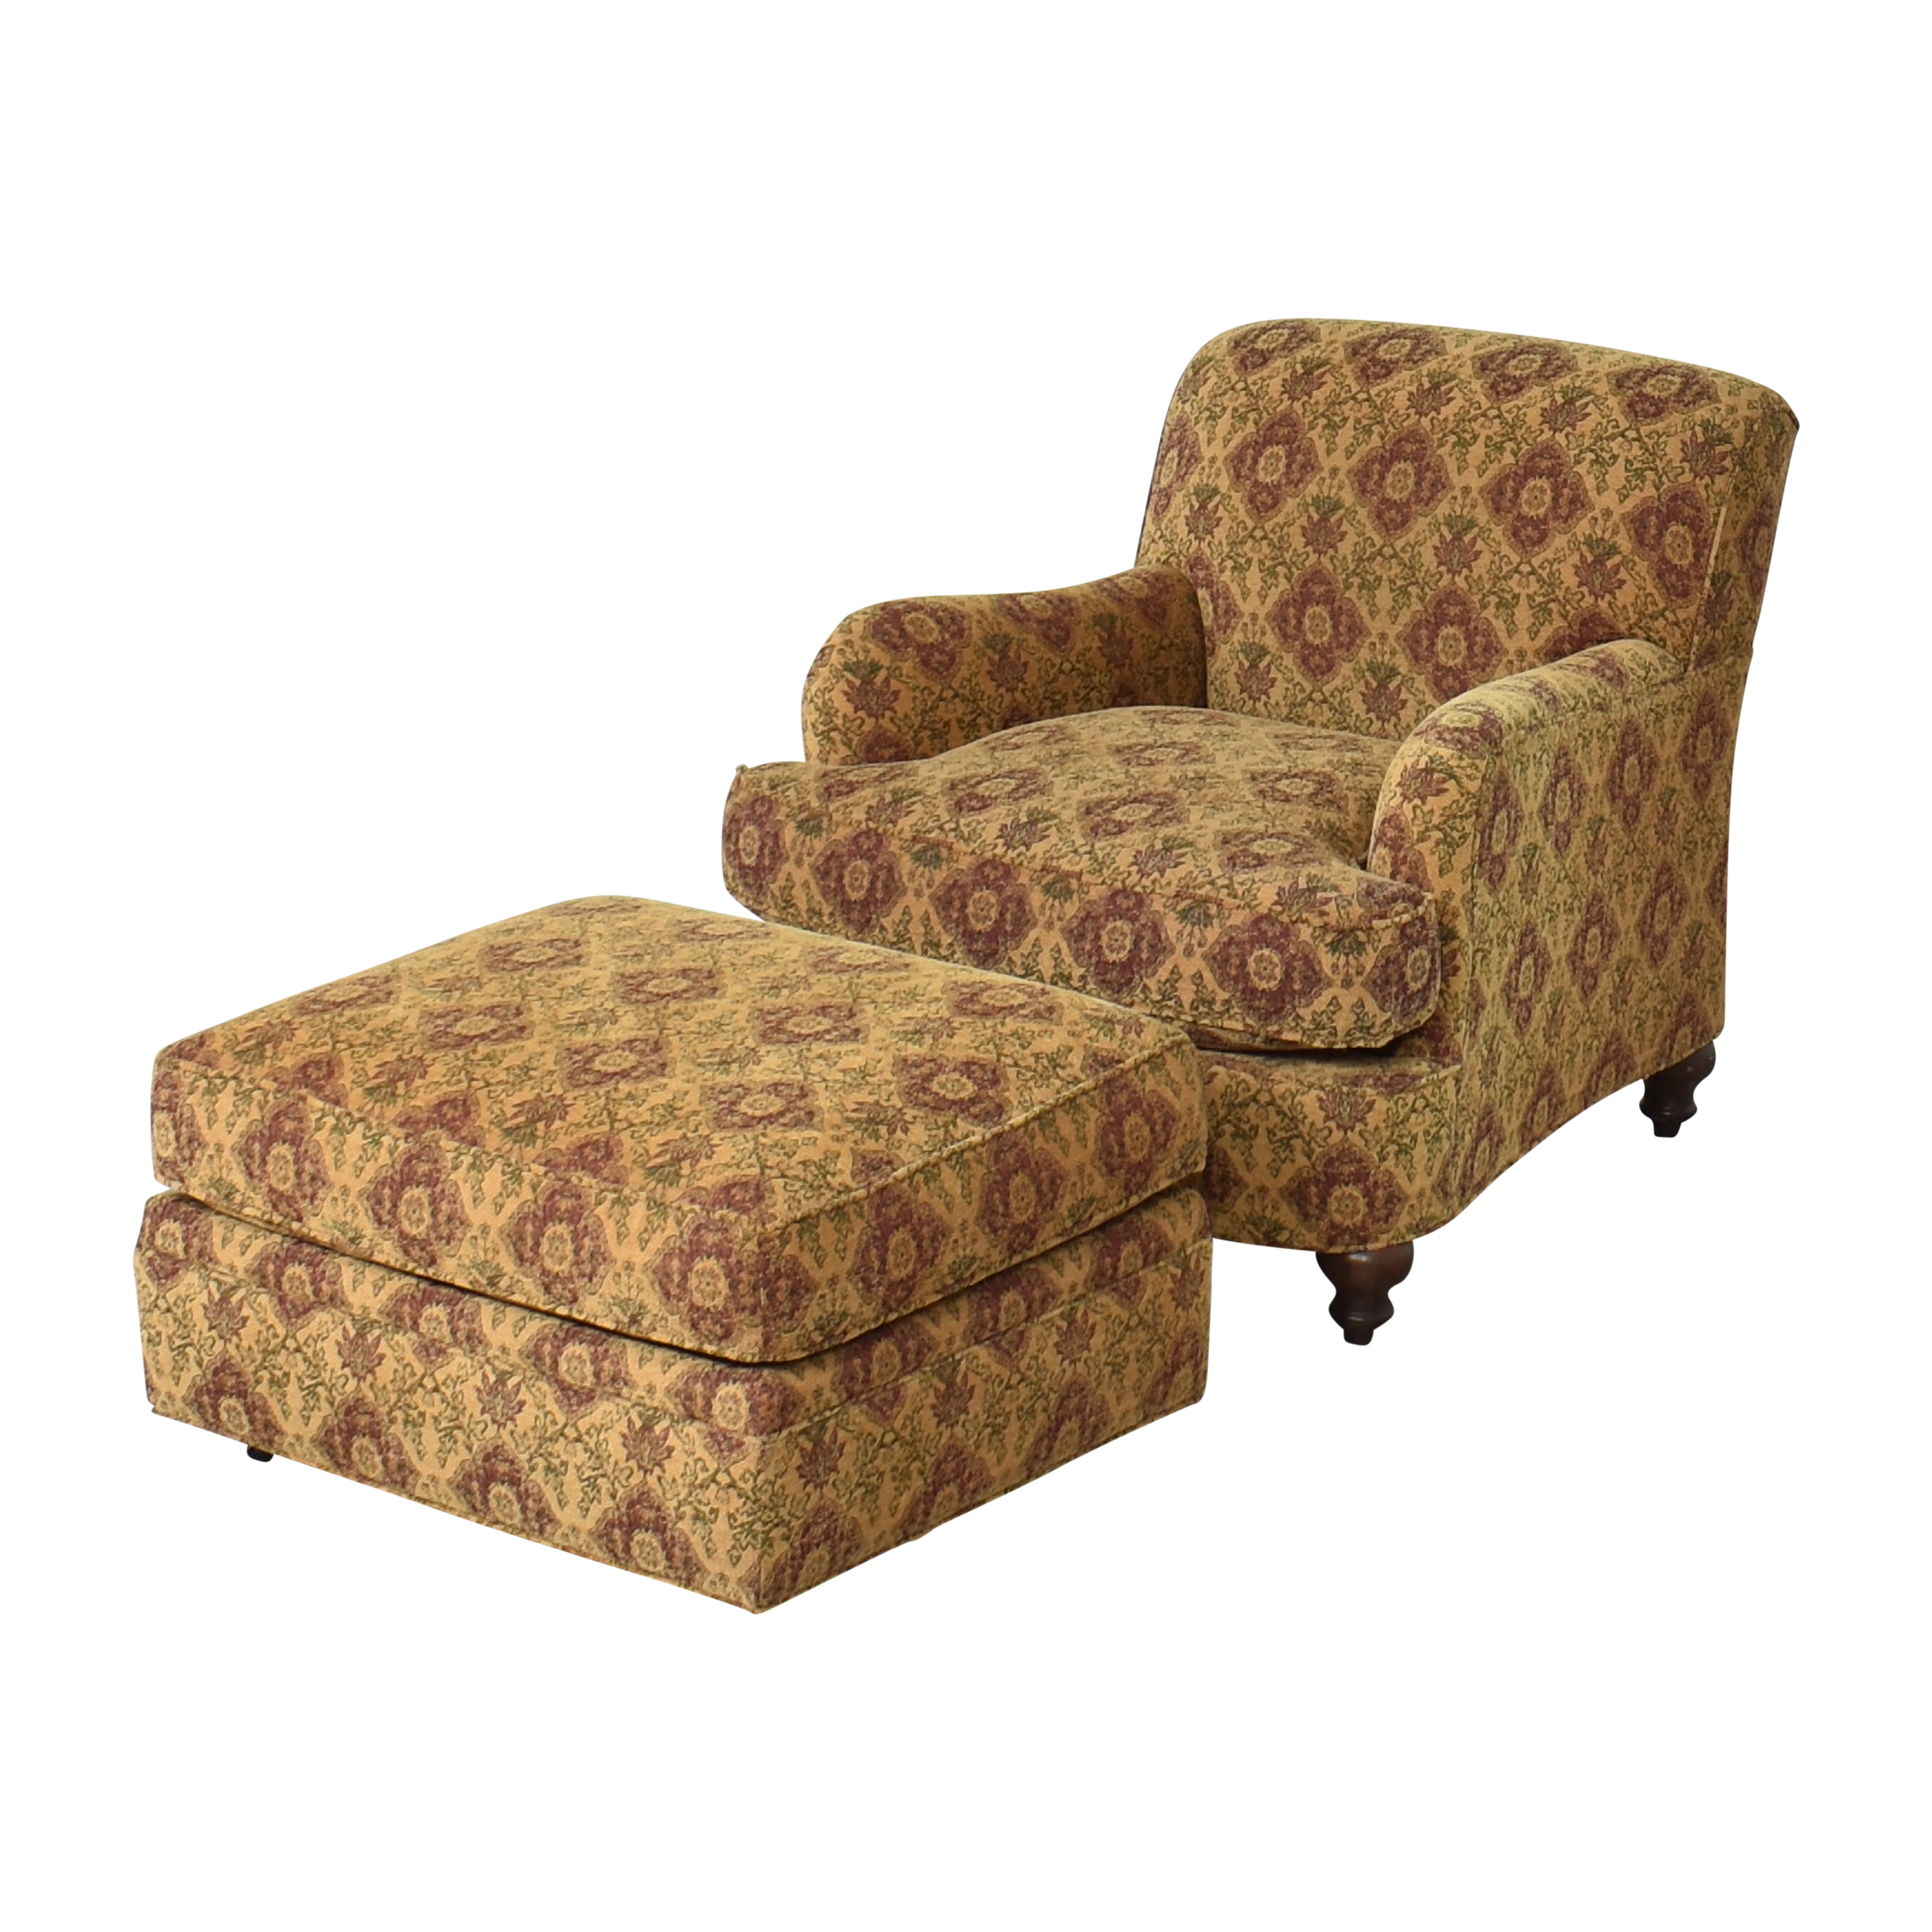 Crate & Barrel Crate & Barrel Upholstered Arm Chair with Ottoman Multi